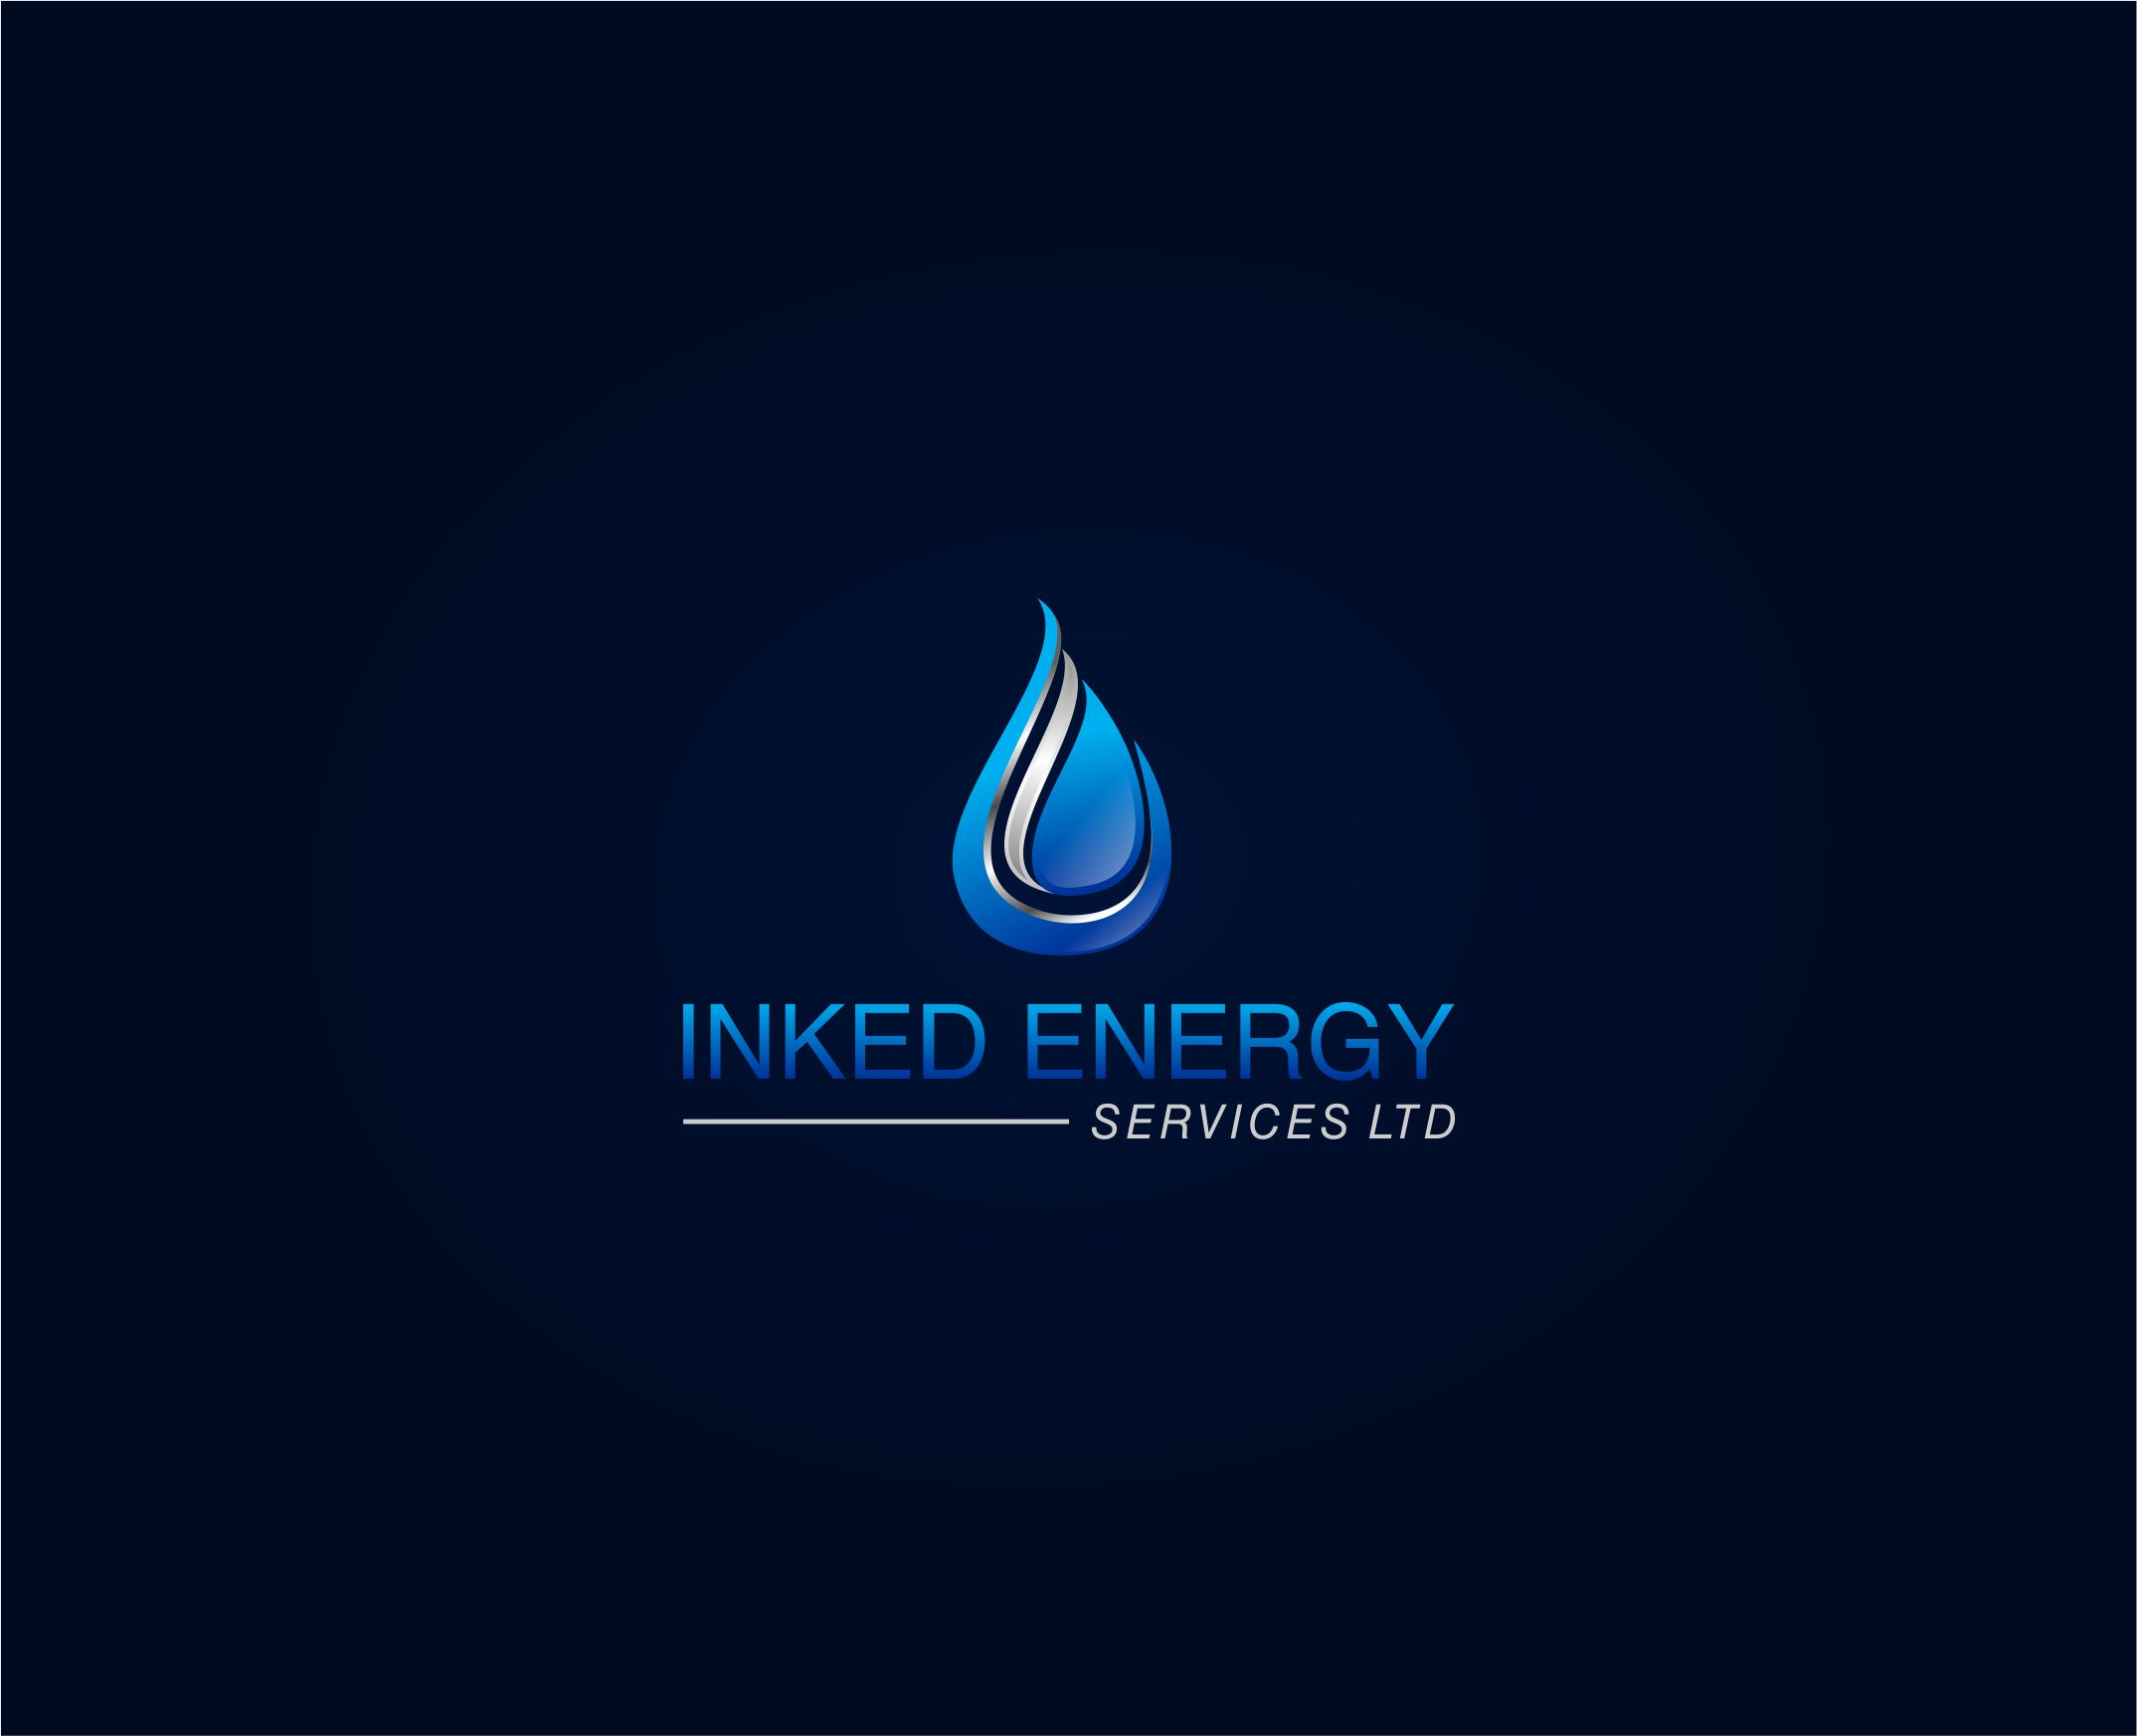 Logo Design by Raymond Garcia - Entry No. 49 in the Logo Design Contest Creative Logo Design for INKED ENERGY SERVICES LTD.